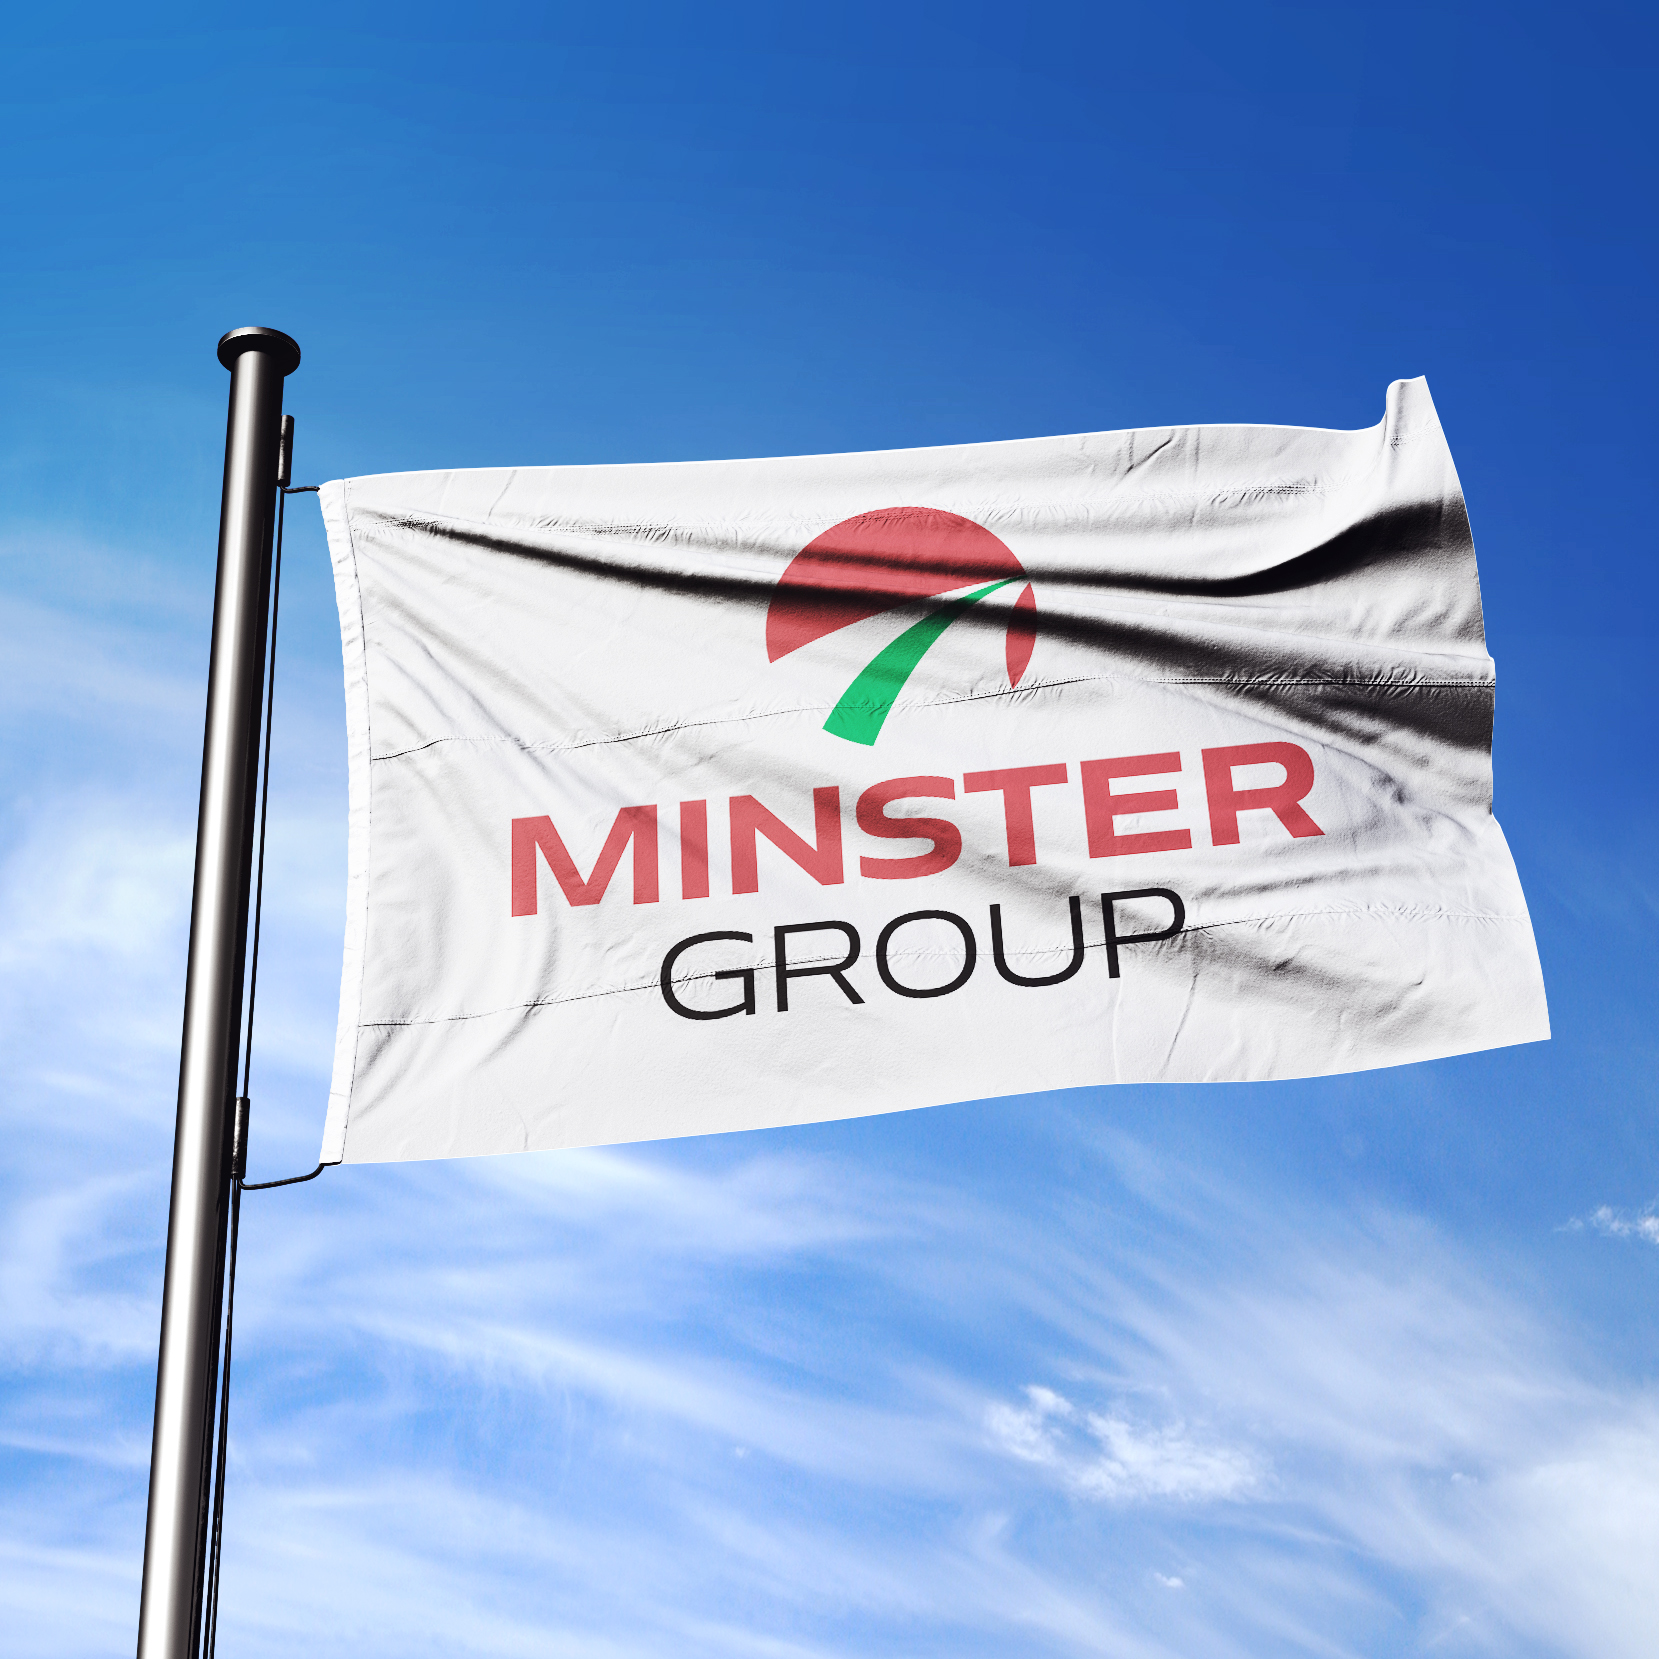 Minster Group Ltd